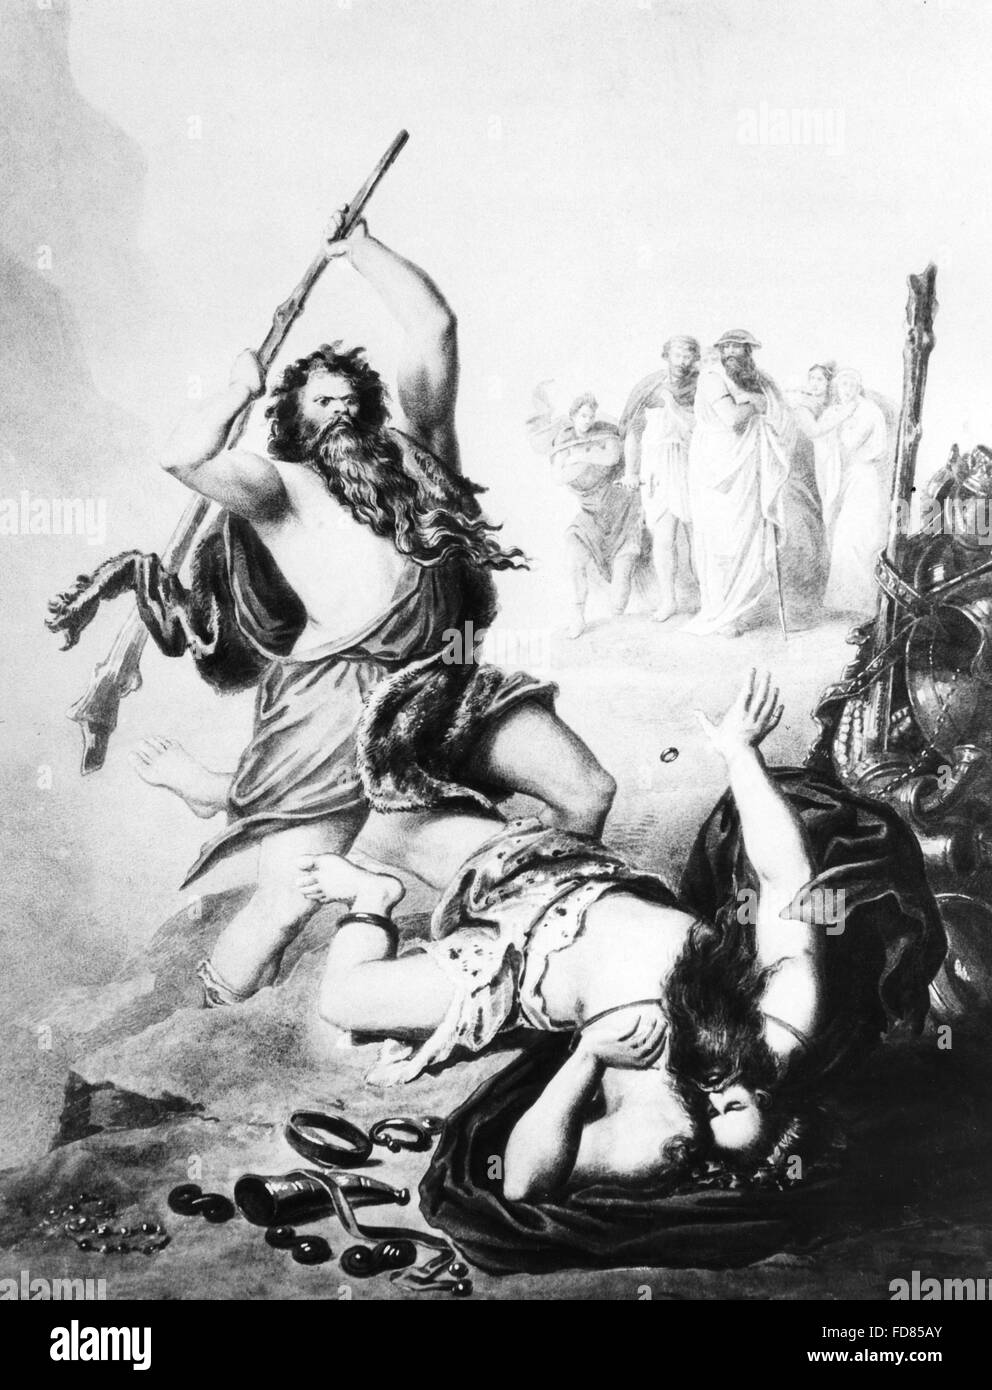 Battle of the giants from the Nibelung Saga - Stock Image